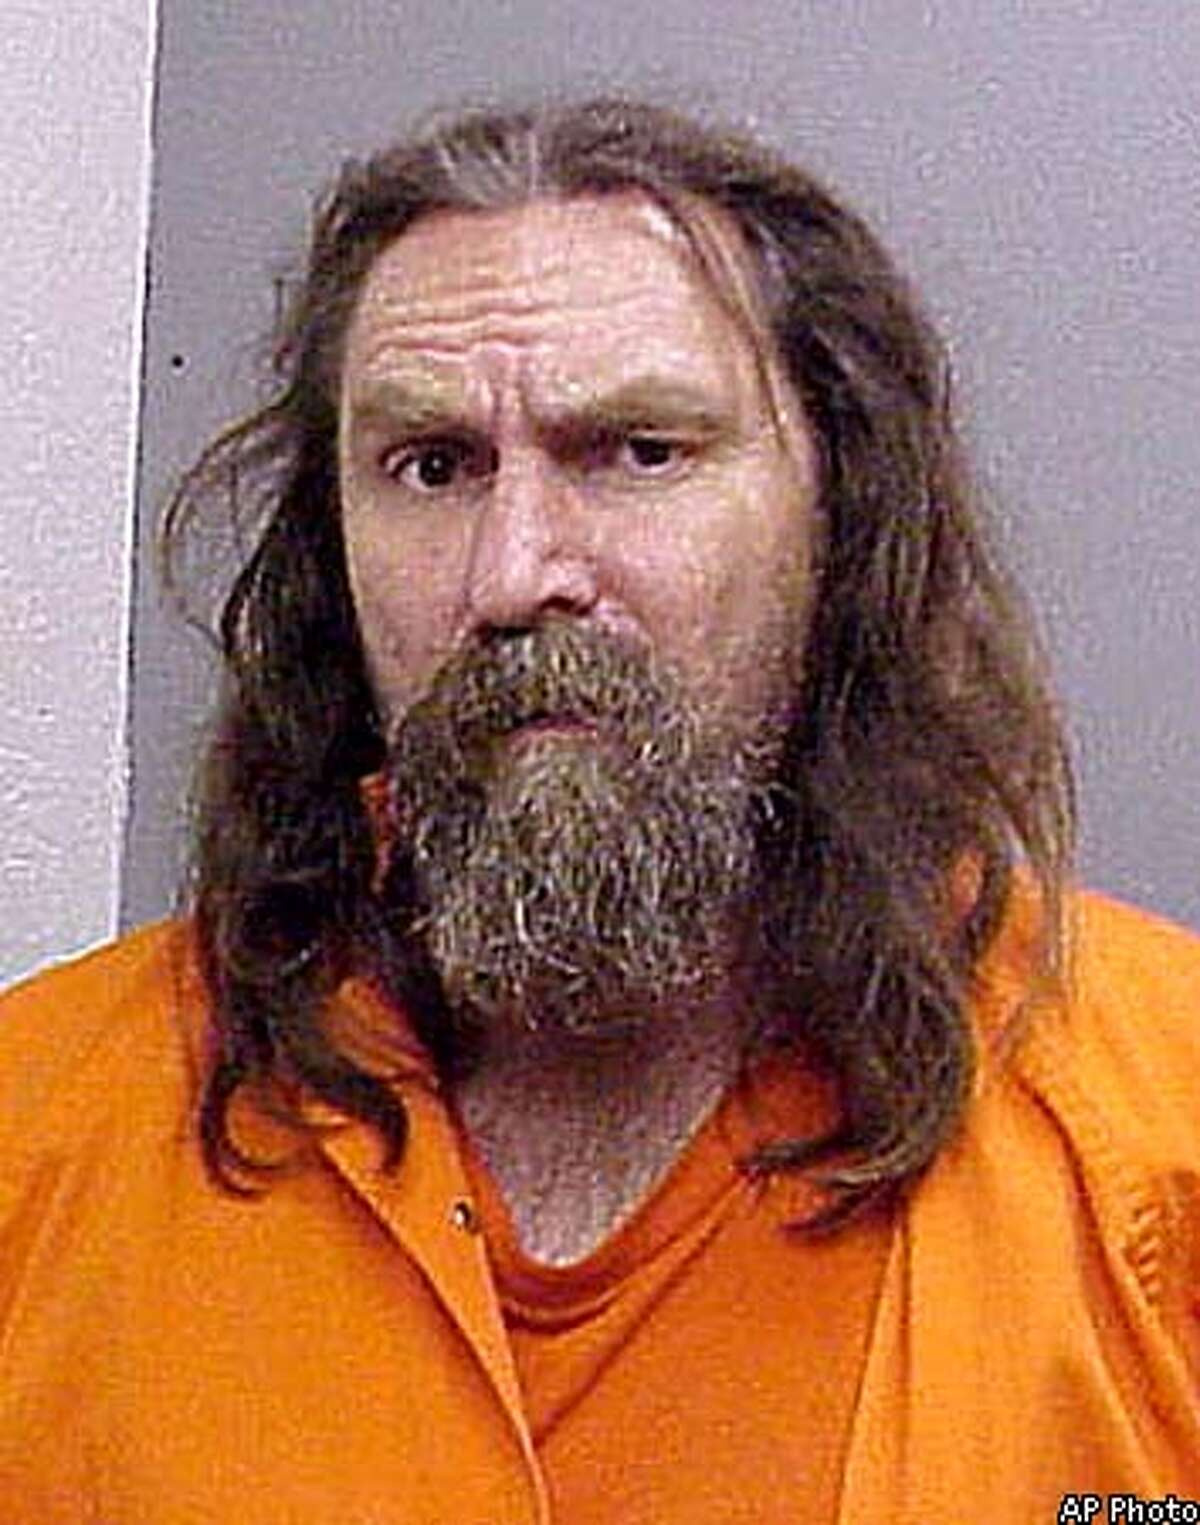 Frank Brady, 50, of Redwood Valley, Calif., is shown in this undated Mendocino County Sheriff's Department photo. Brady, according to police, allegedly started a campfire that burned out of control near Hopland Calif., Monday, Aug. 27, 2001. Brady was charged with murder Tuesday in the deaths of two pilots whose firefighting planes collided over the blaze. (AP Photo/Mendocino County Sheriff's Department)